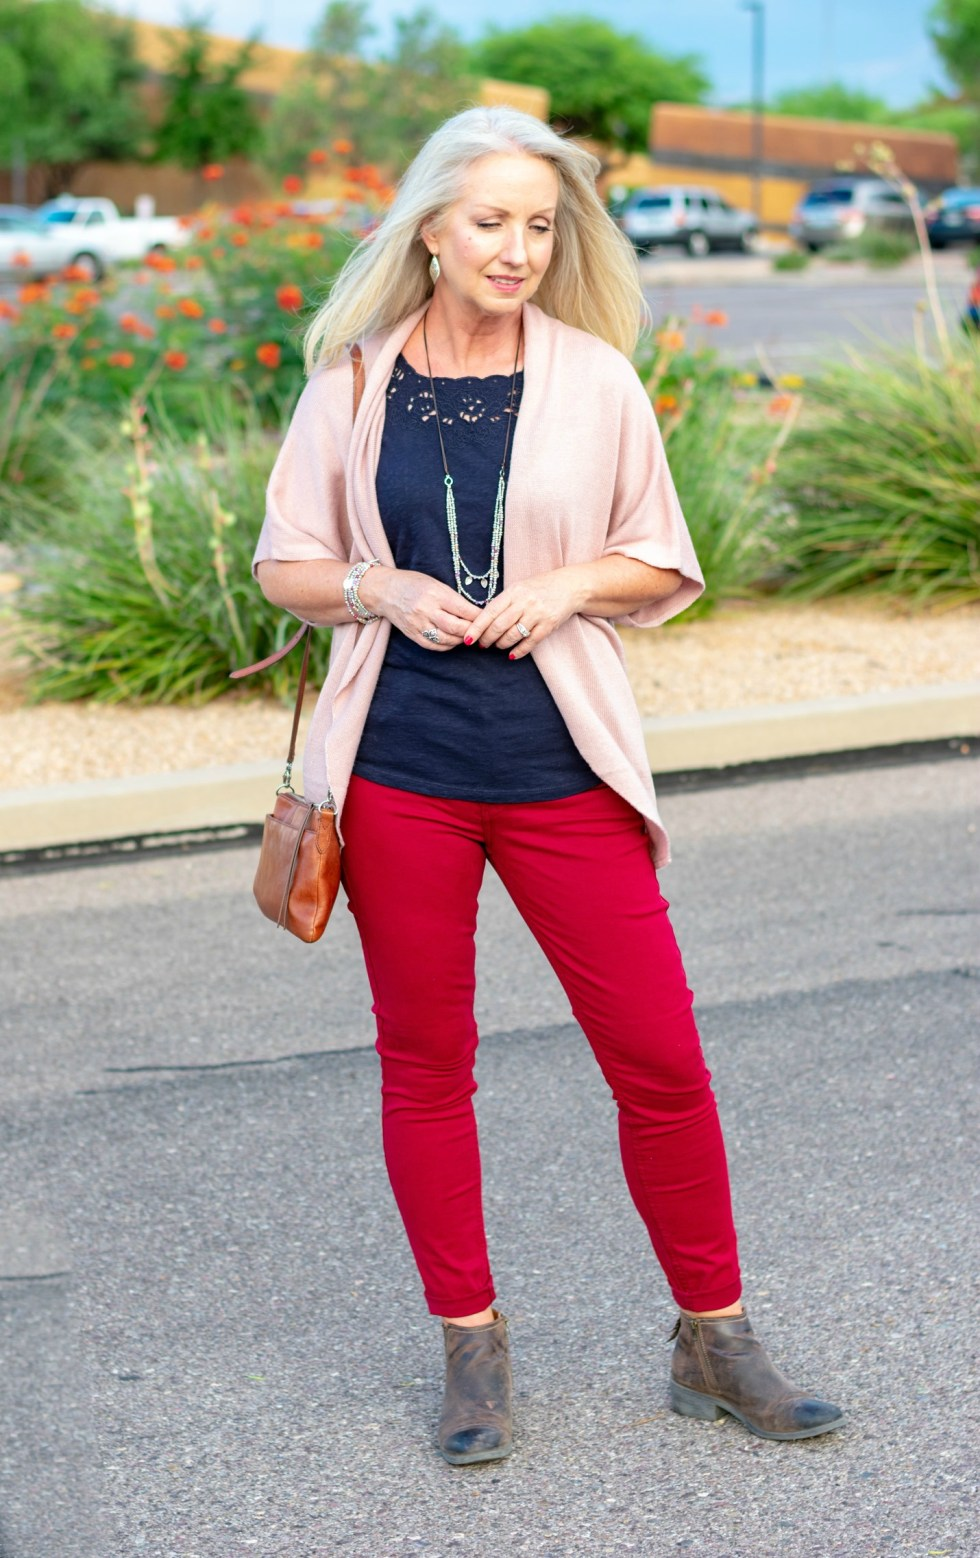 Dolman Sleeve Cardigan with Colored Jeans